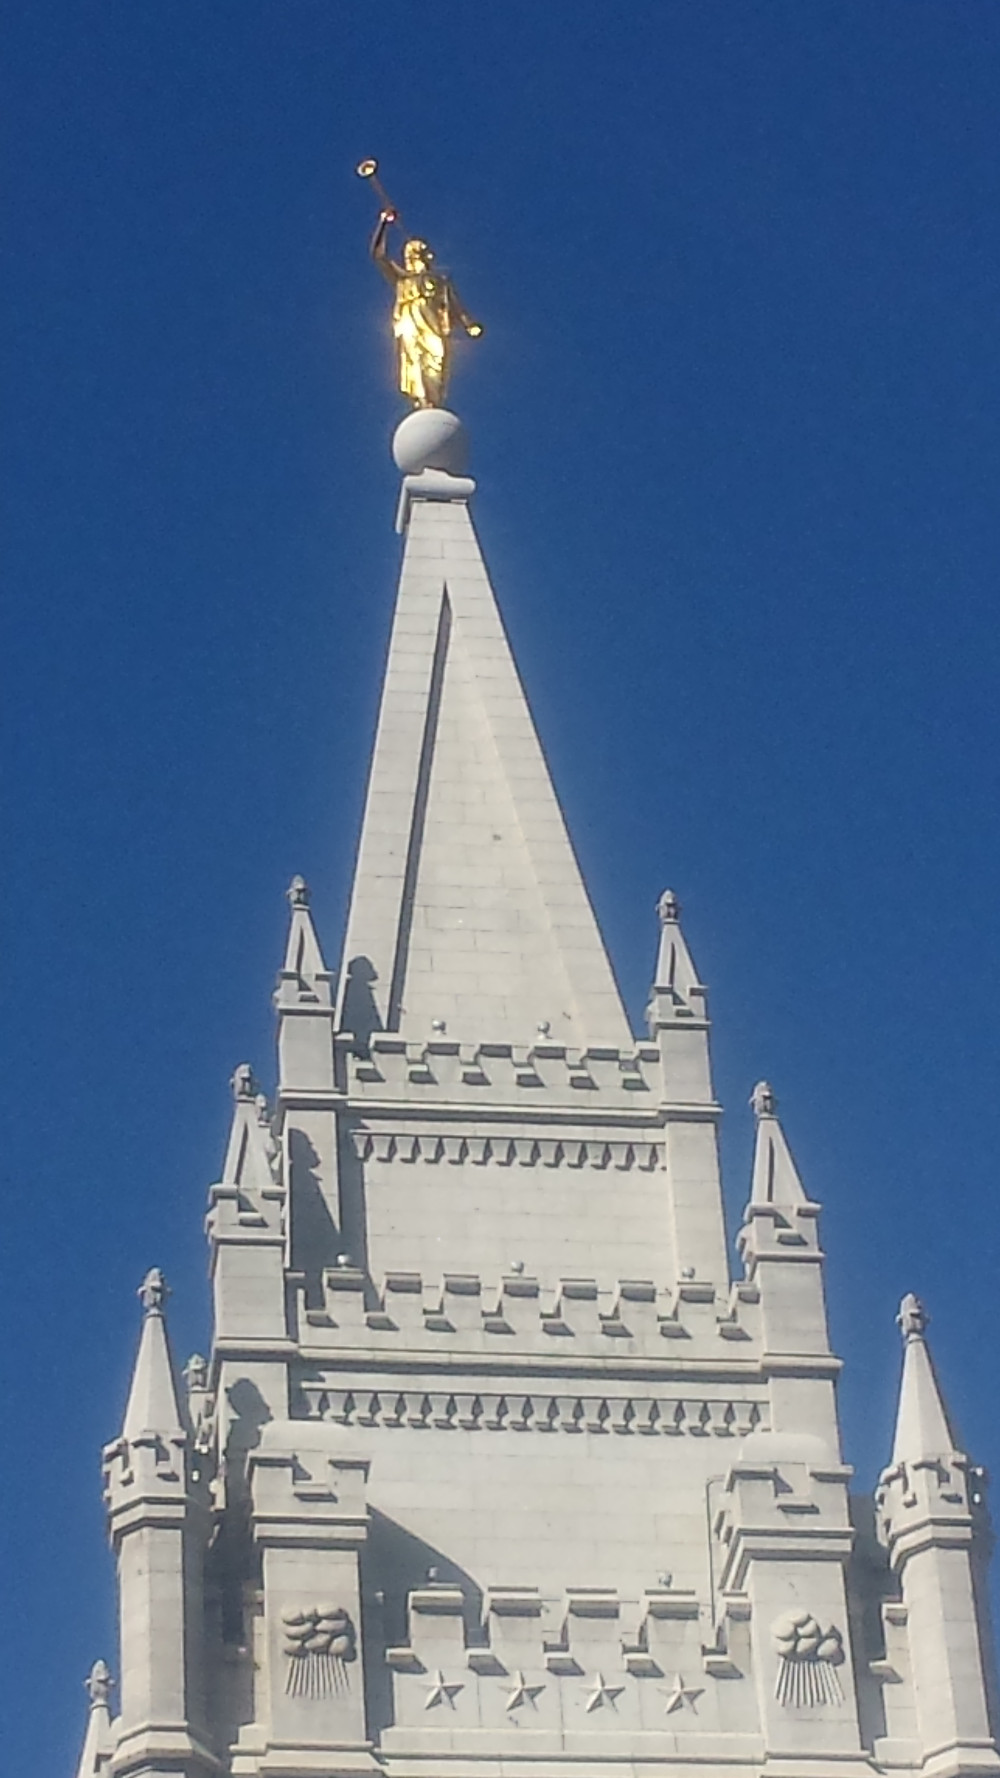 Atop every temple is the angel Moroni blowing his trumpet to herald in the last days.